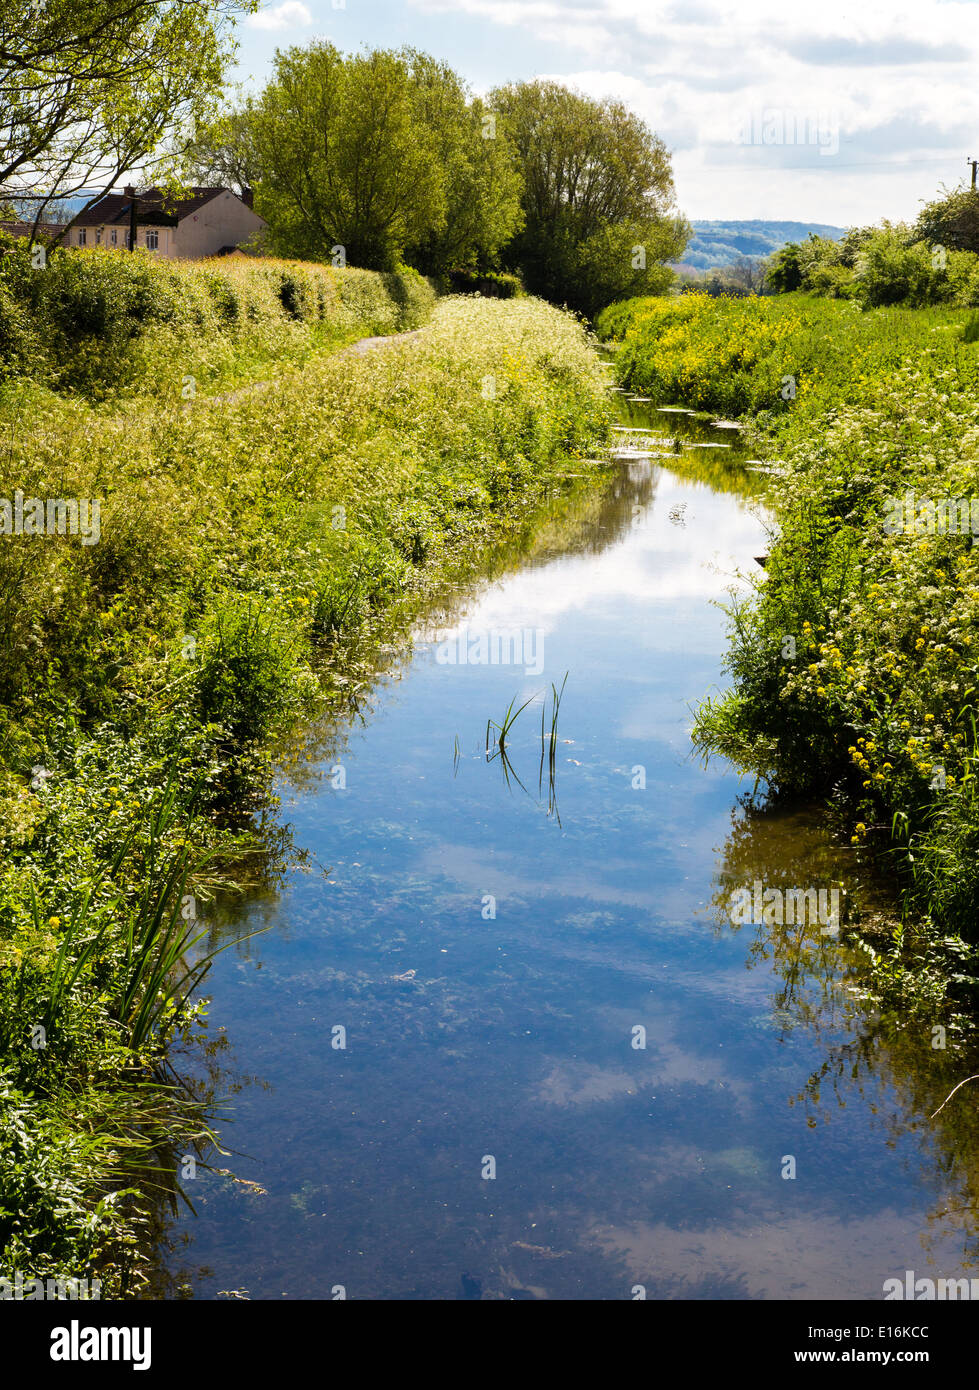 Springtime on the Somerset Levels UK  - a drainage dyke fringed with lush vegetation with the Mendip hills beyond - Stock Image